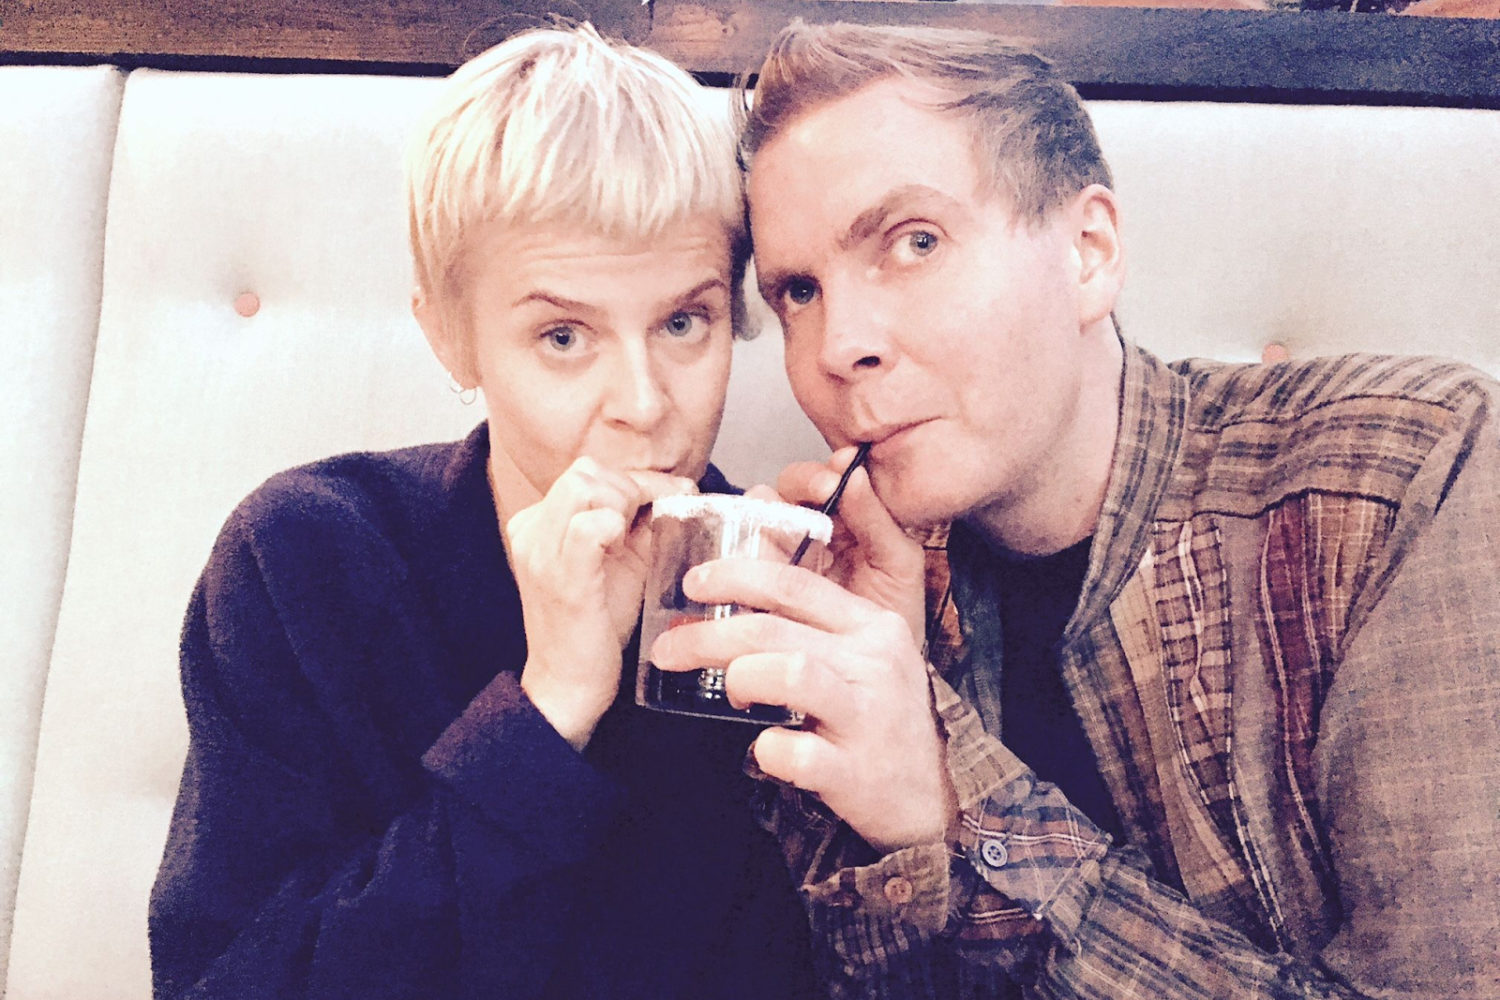 Robyn and Jónsi team up for new track 'Salt Licorice'